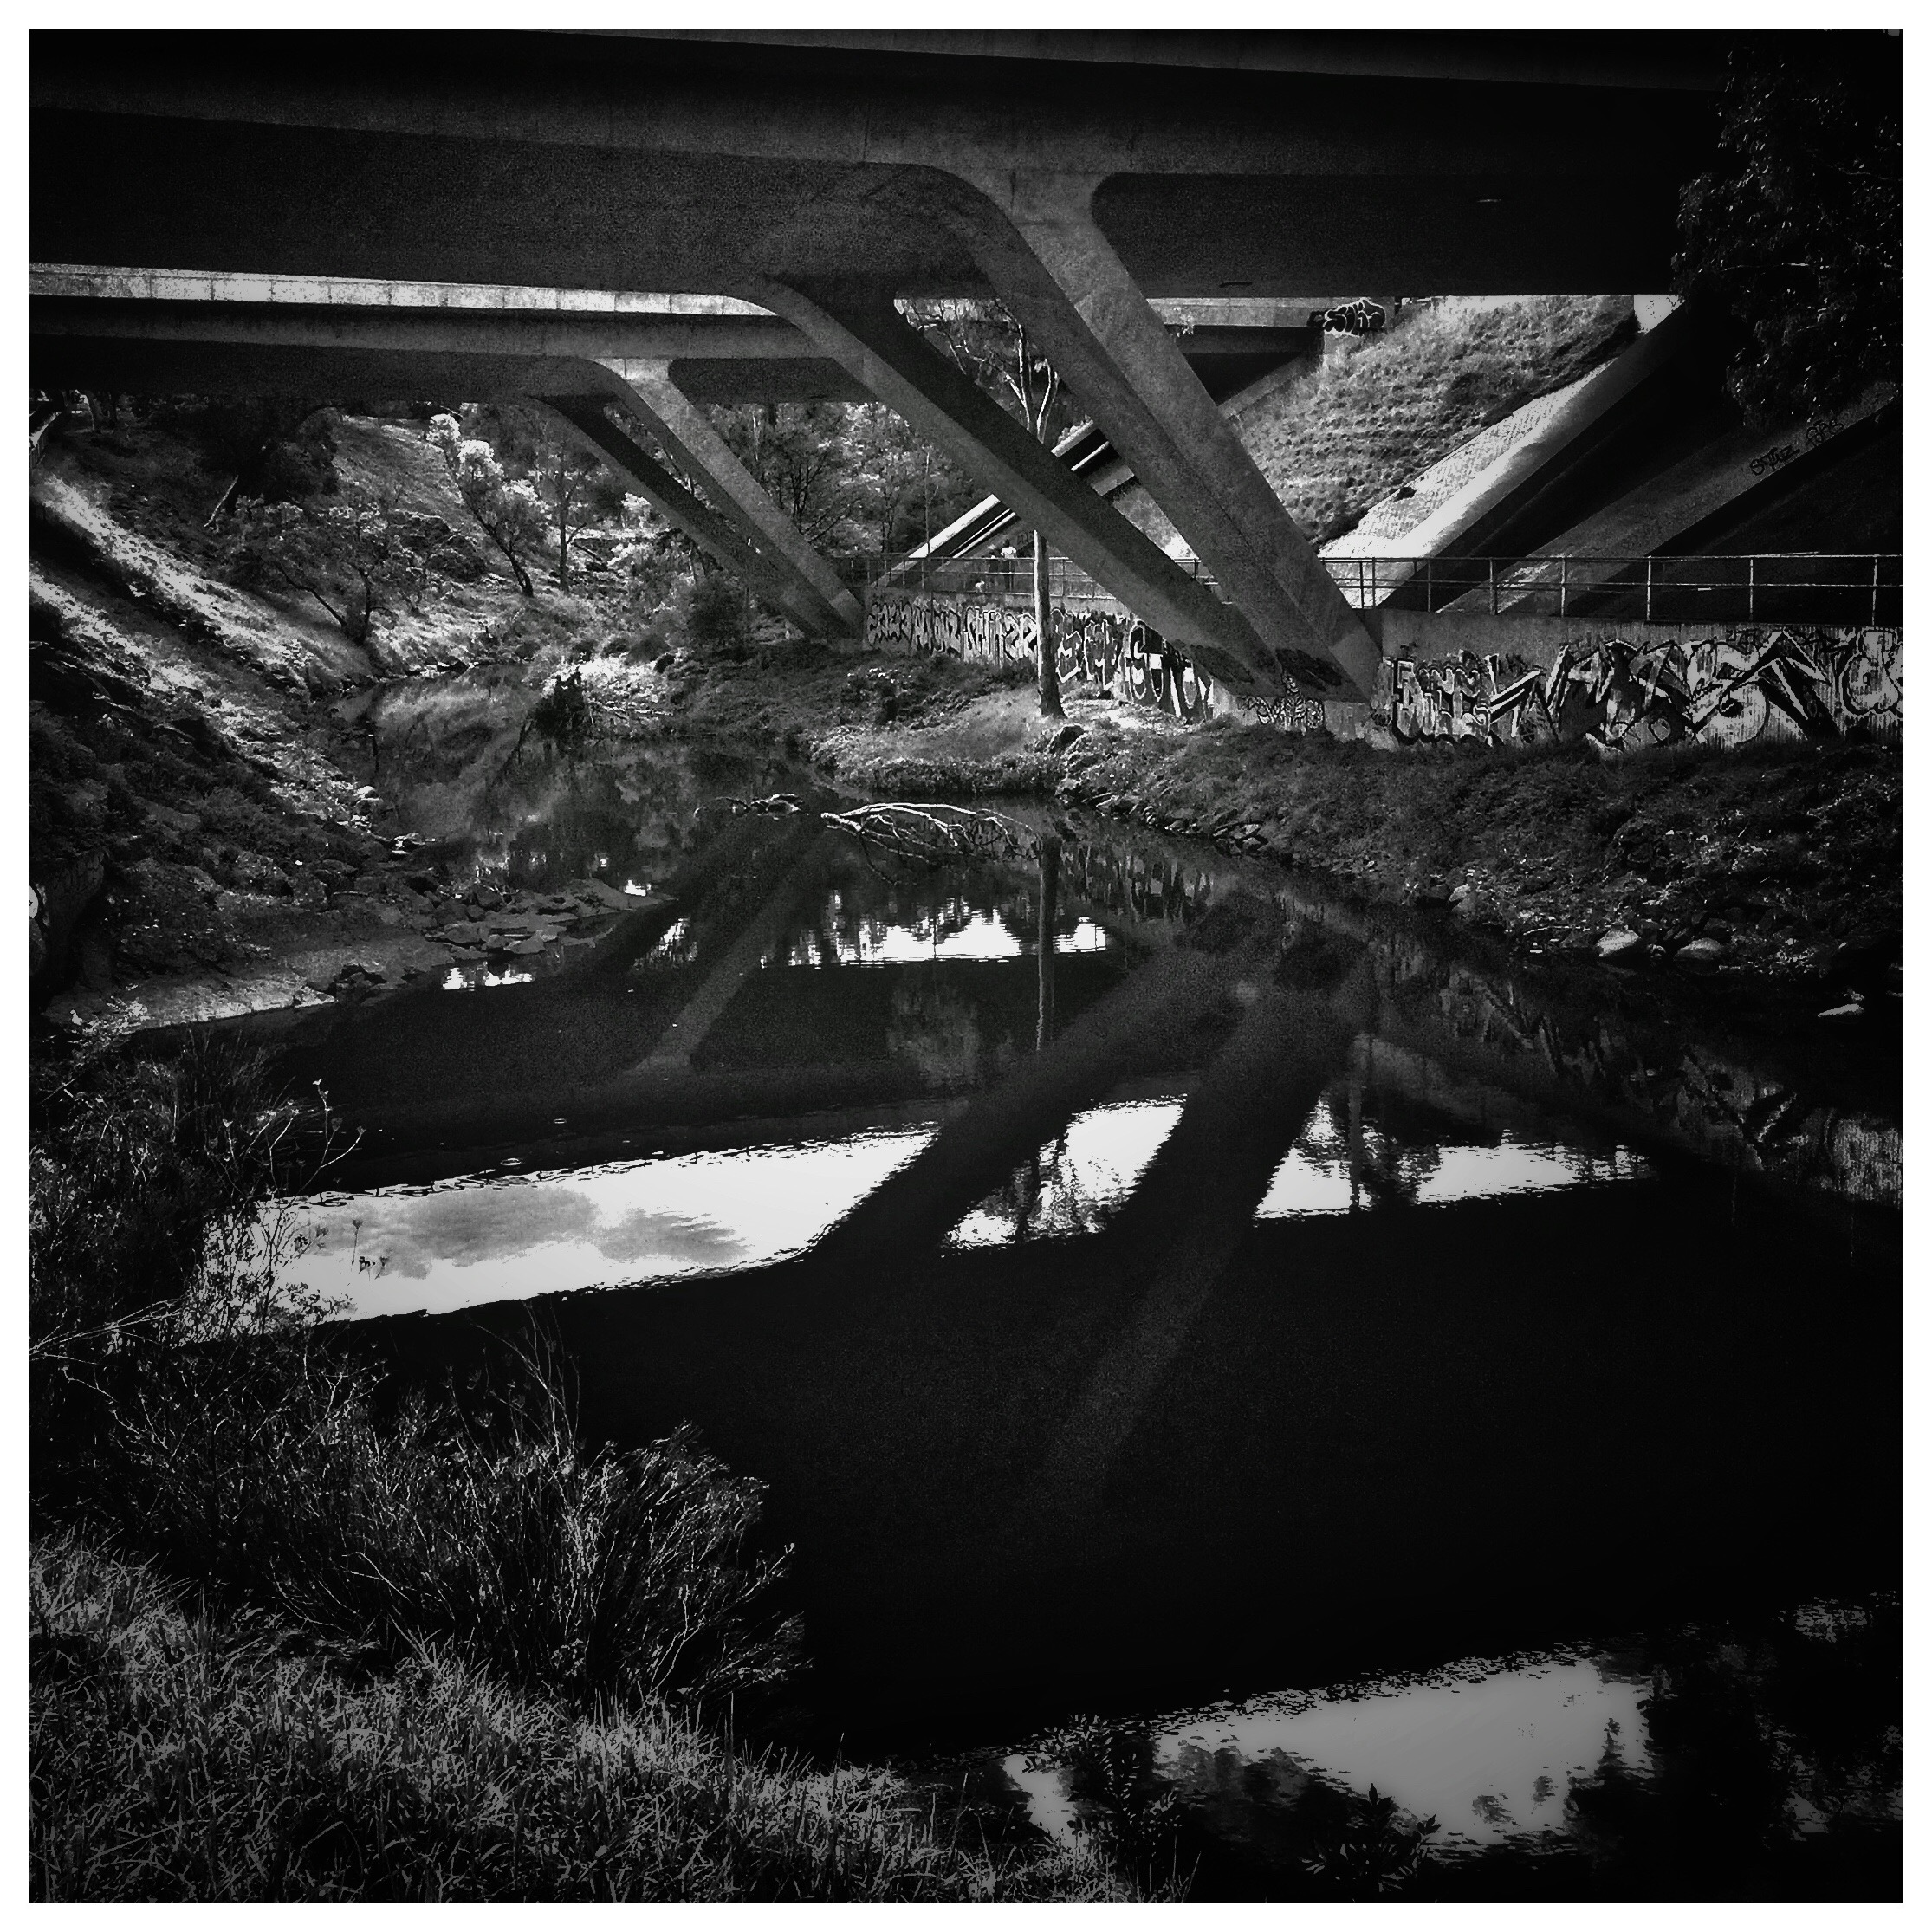 Day 1831. Bridging Reflection